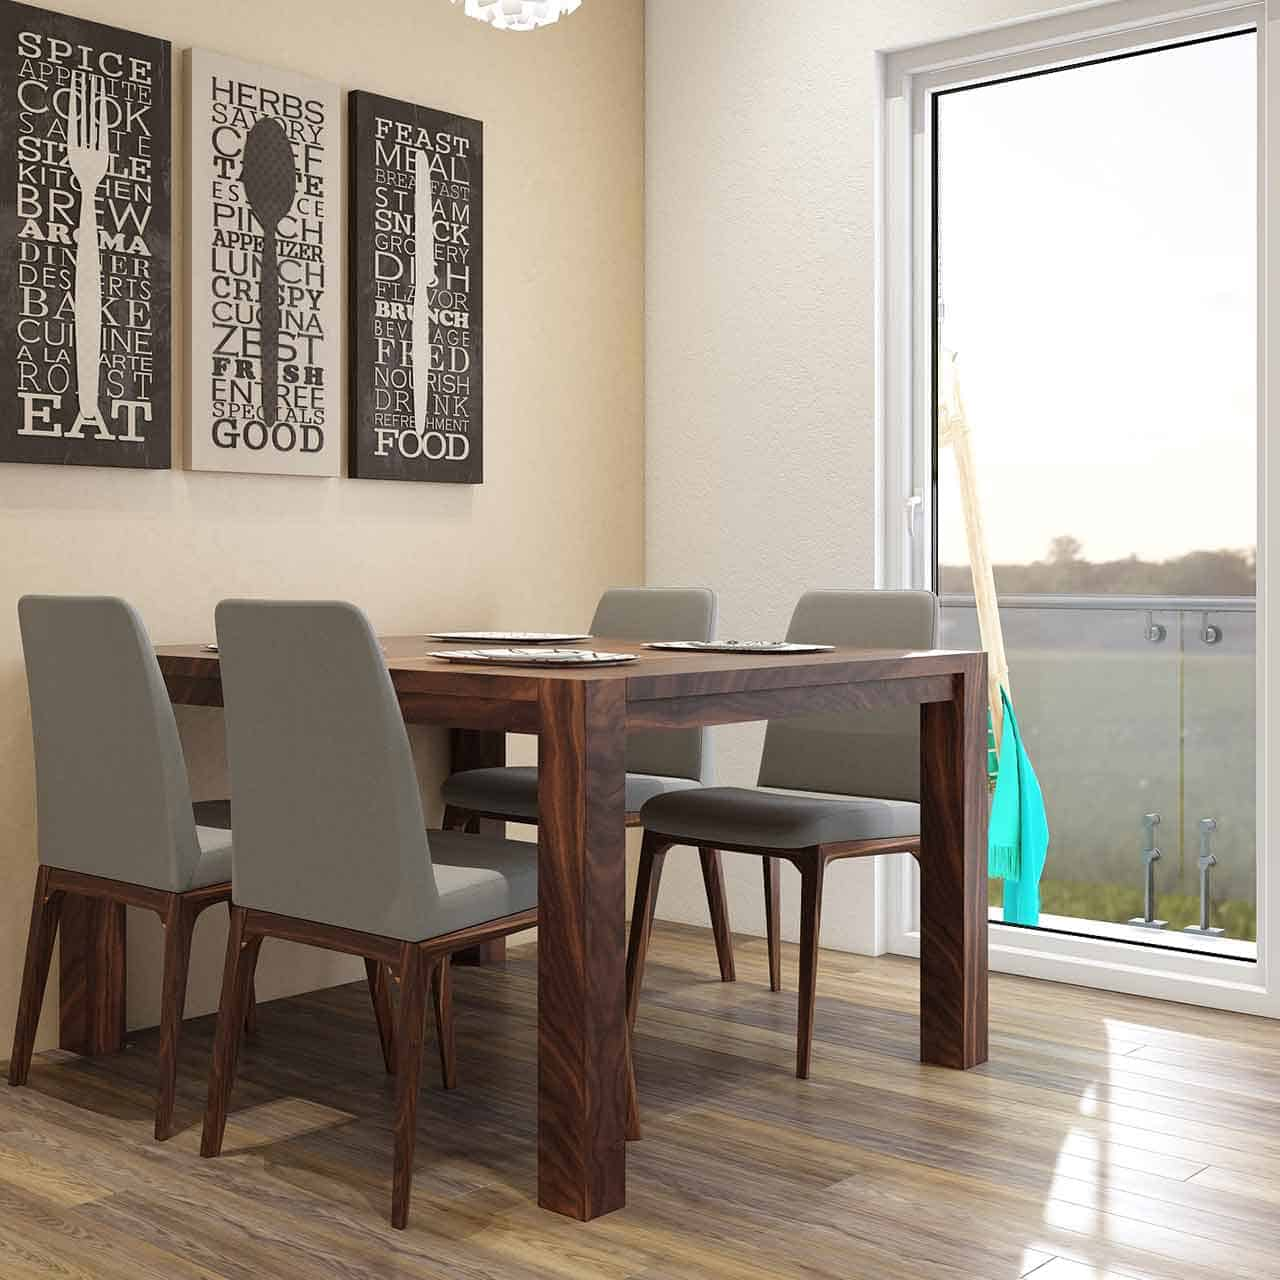 Simple dining room design where light tables and chairs that aren't bulky are ideal for simple dining room design styles